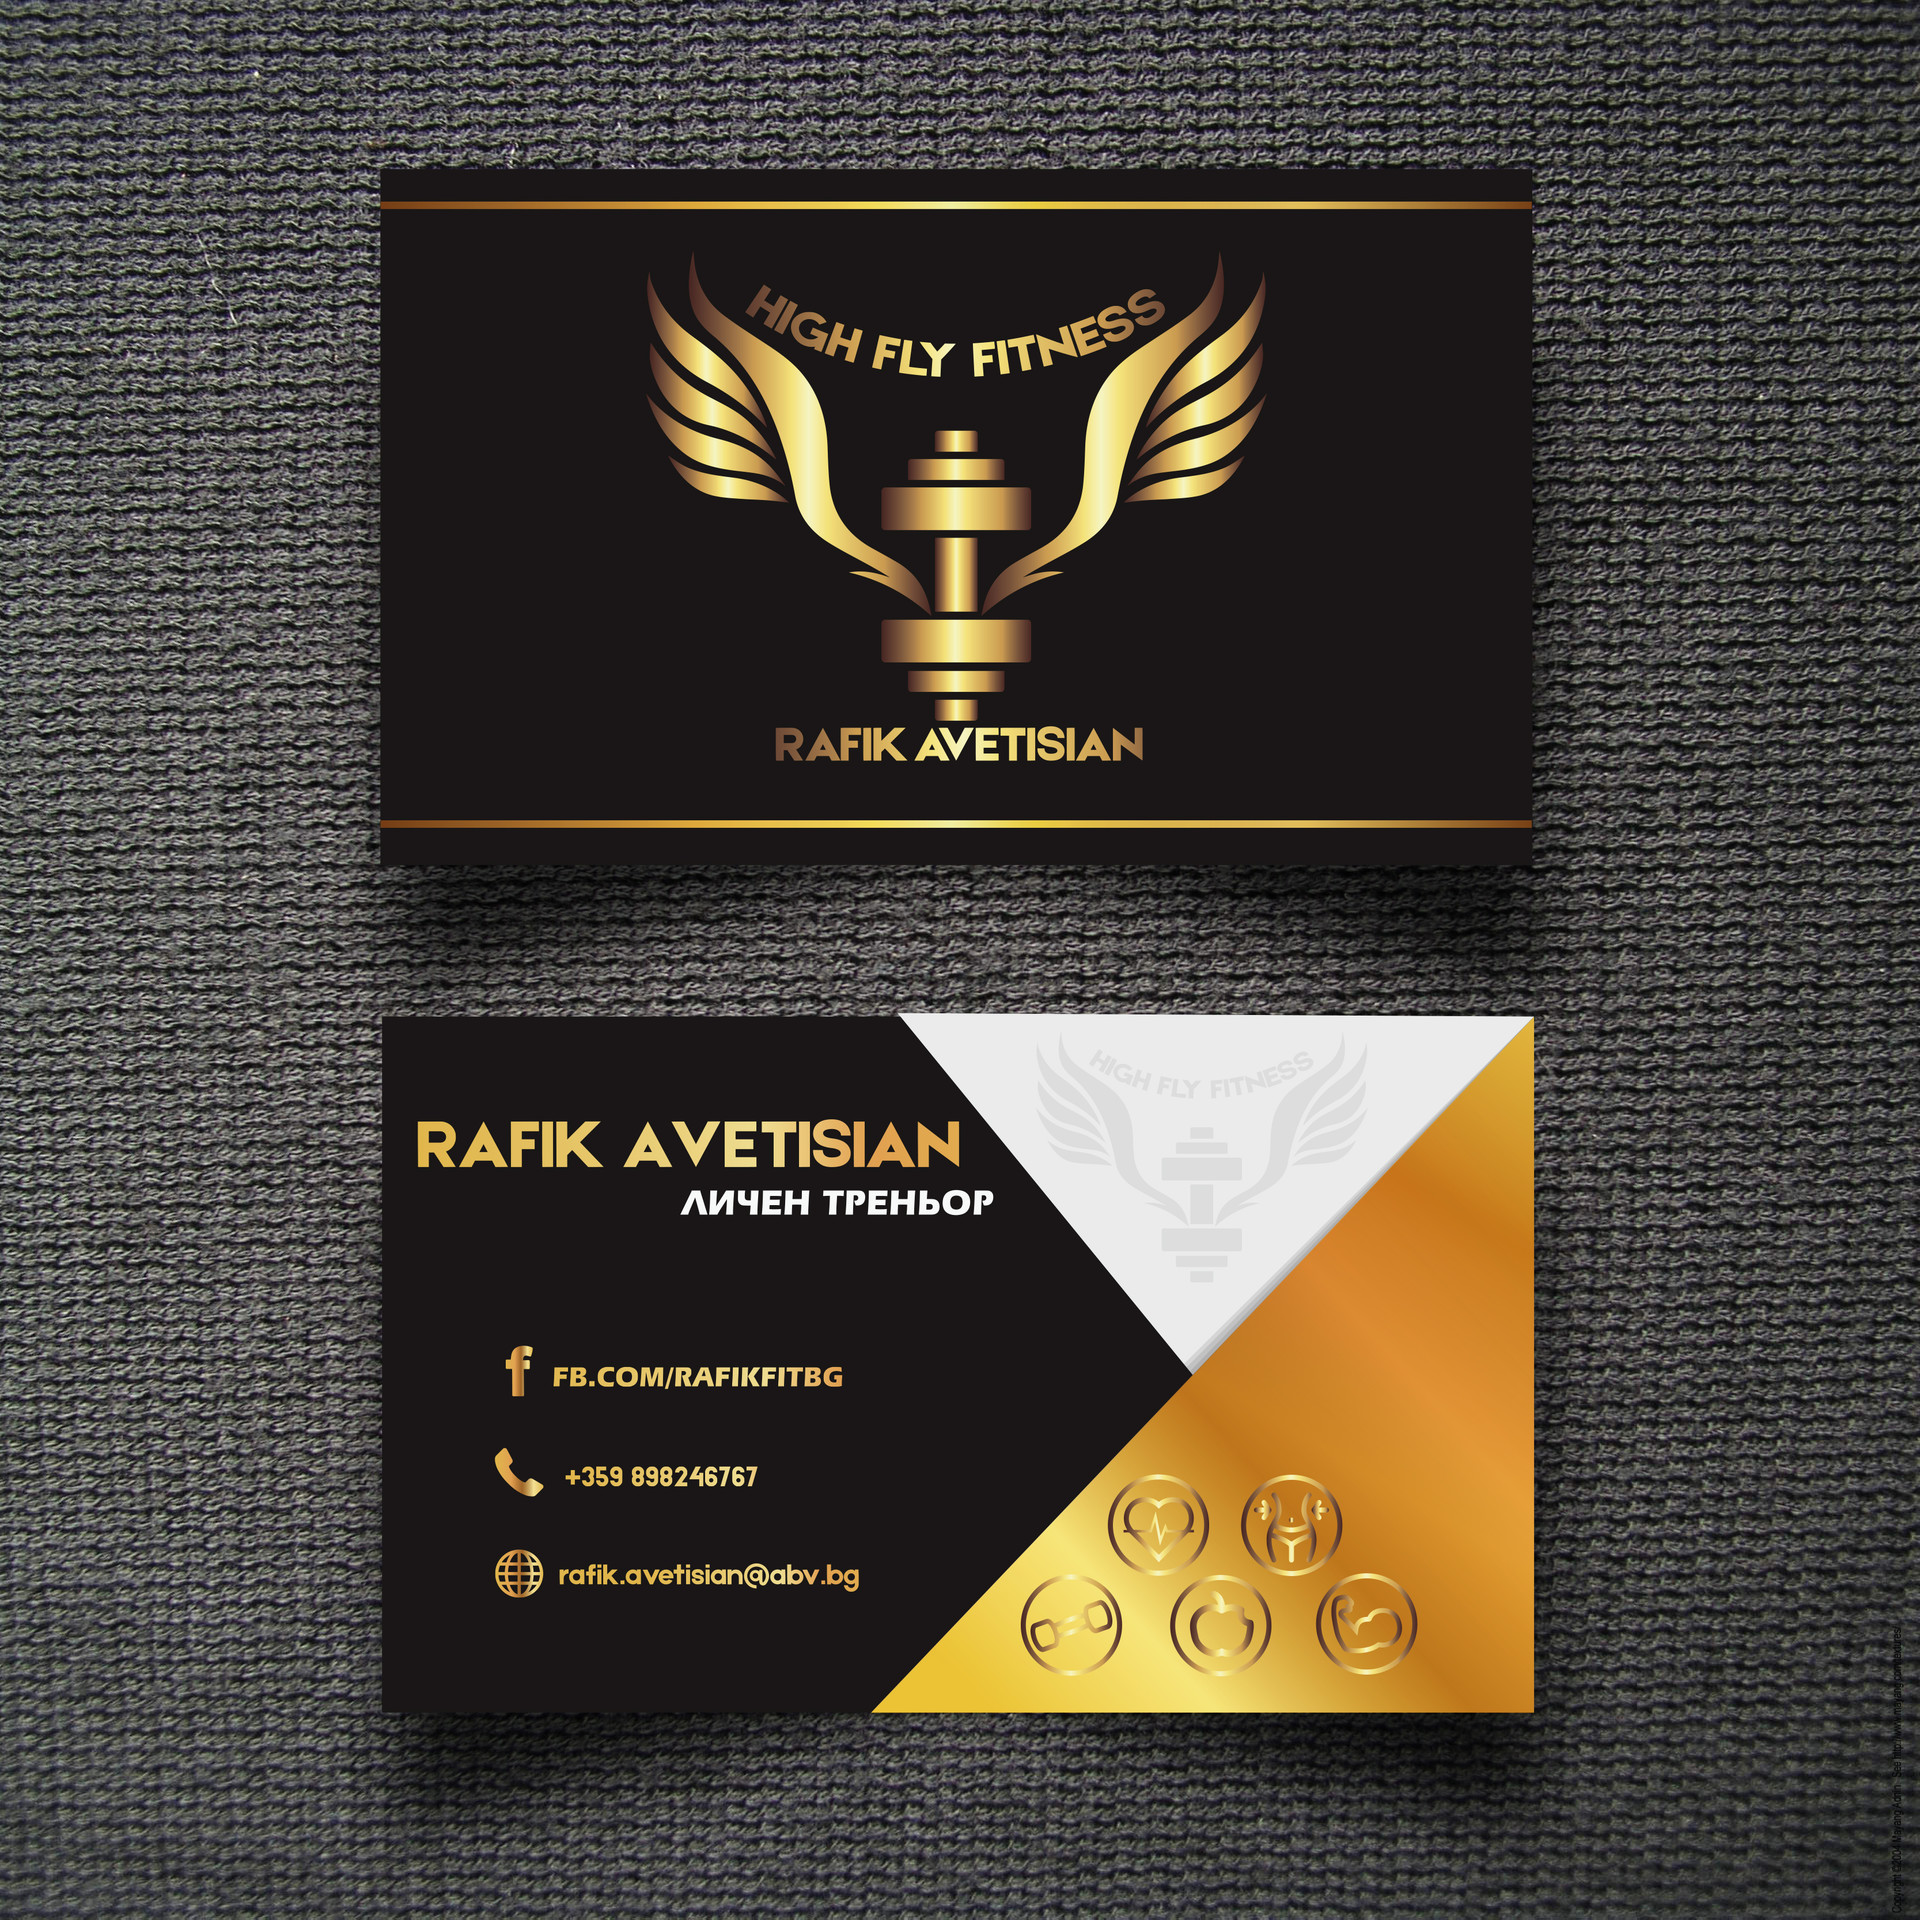 DESIGN FOR PERSONAL TRAINER BUSINESS CARD LOGO PICTOGRAMS FRONT BACK VIEW